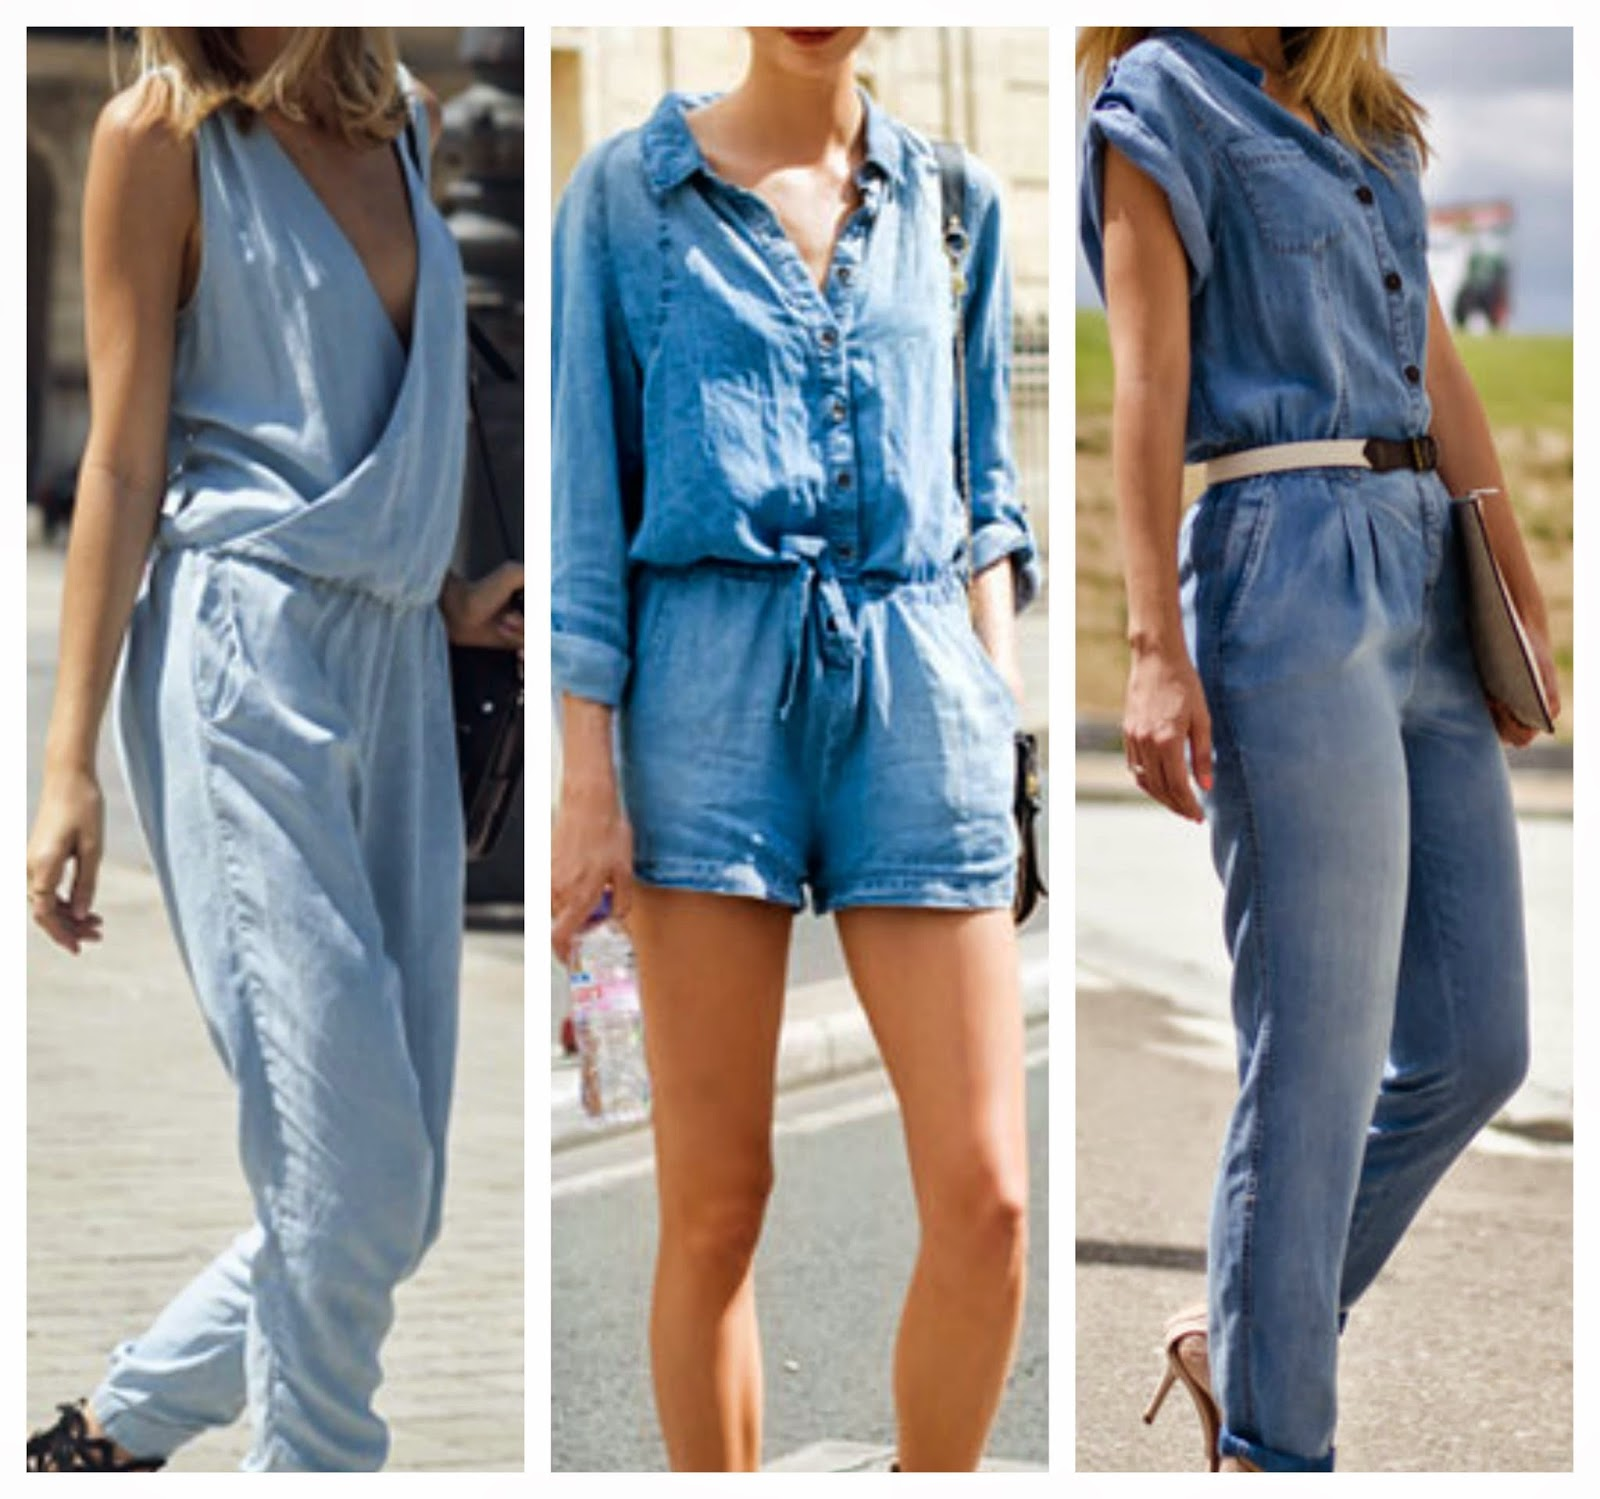 ____Pearls and Roses____ : Hot Summer Trend: Jumpsuits!